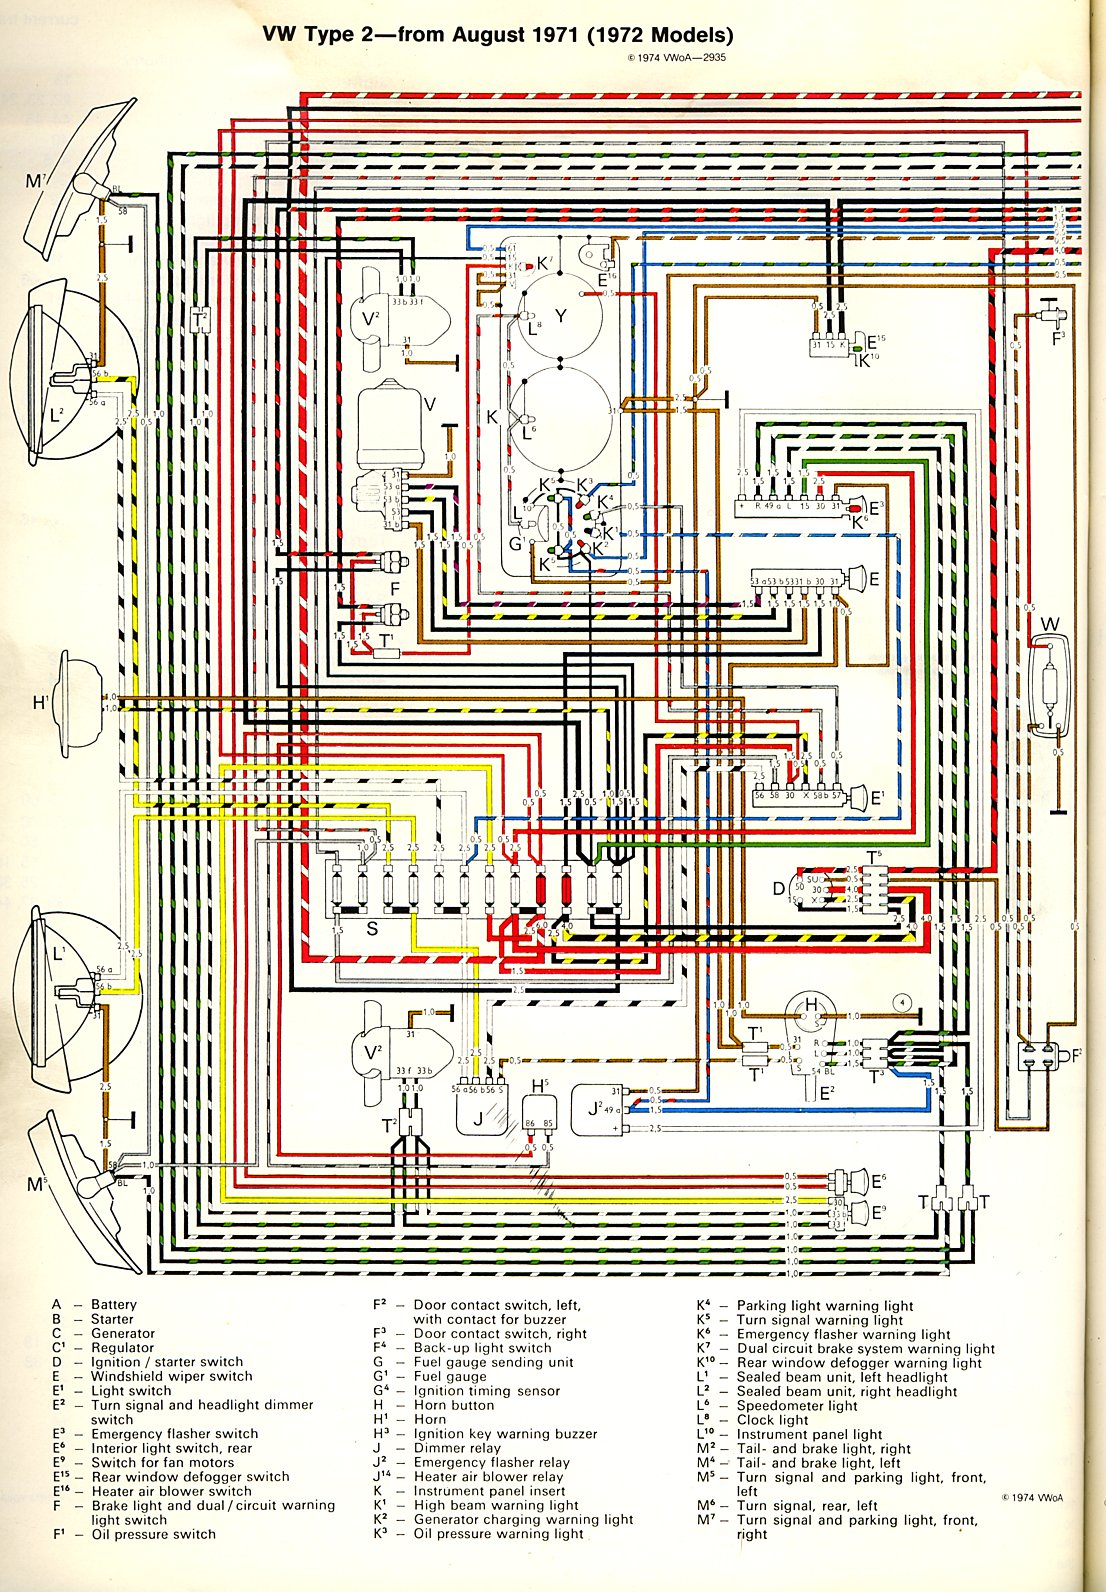 1972 Bus    Wiring       diagram      TheGoldenBug